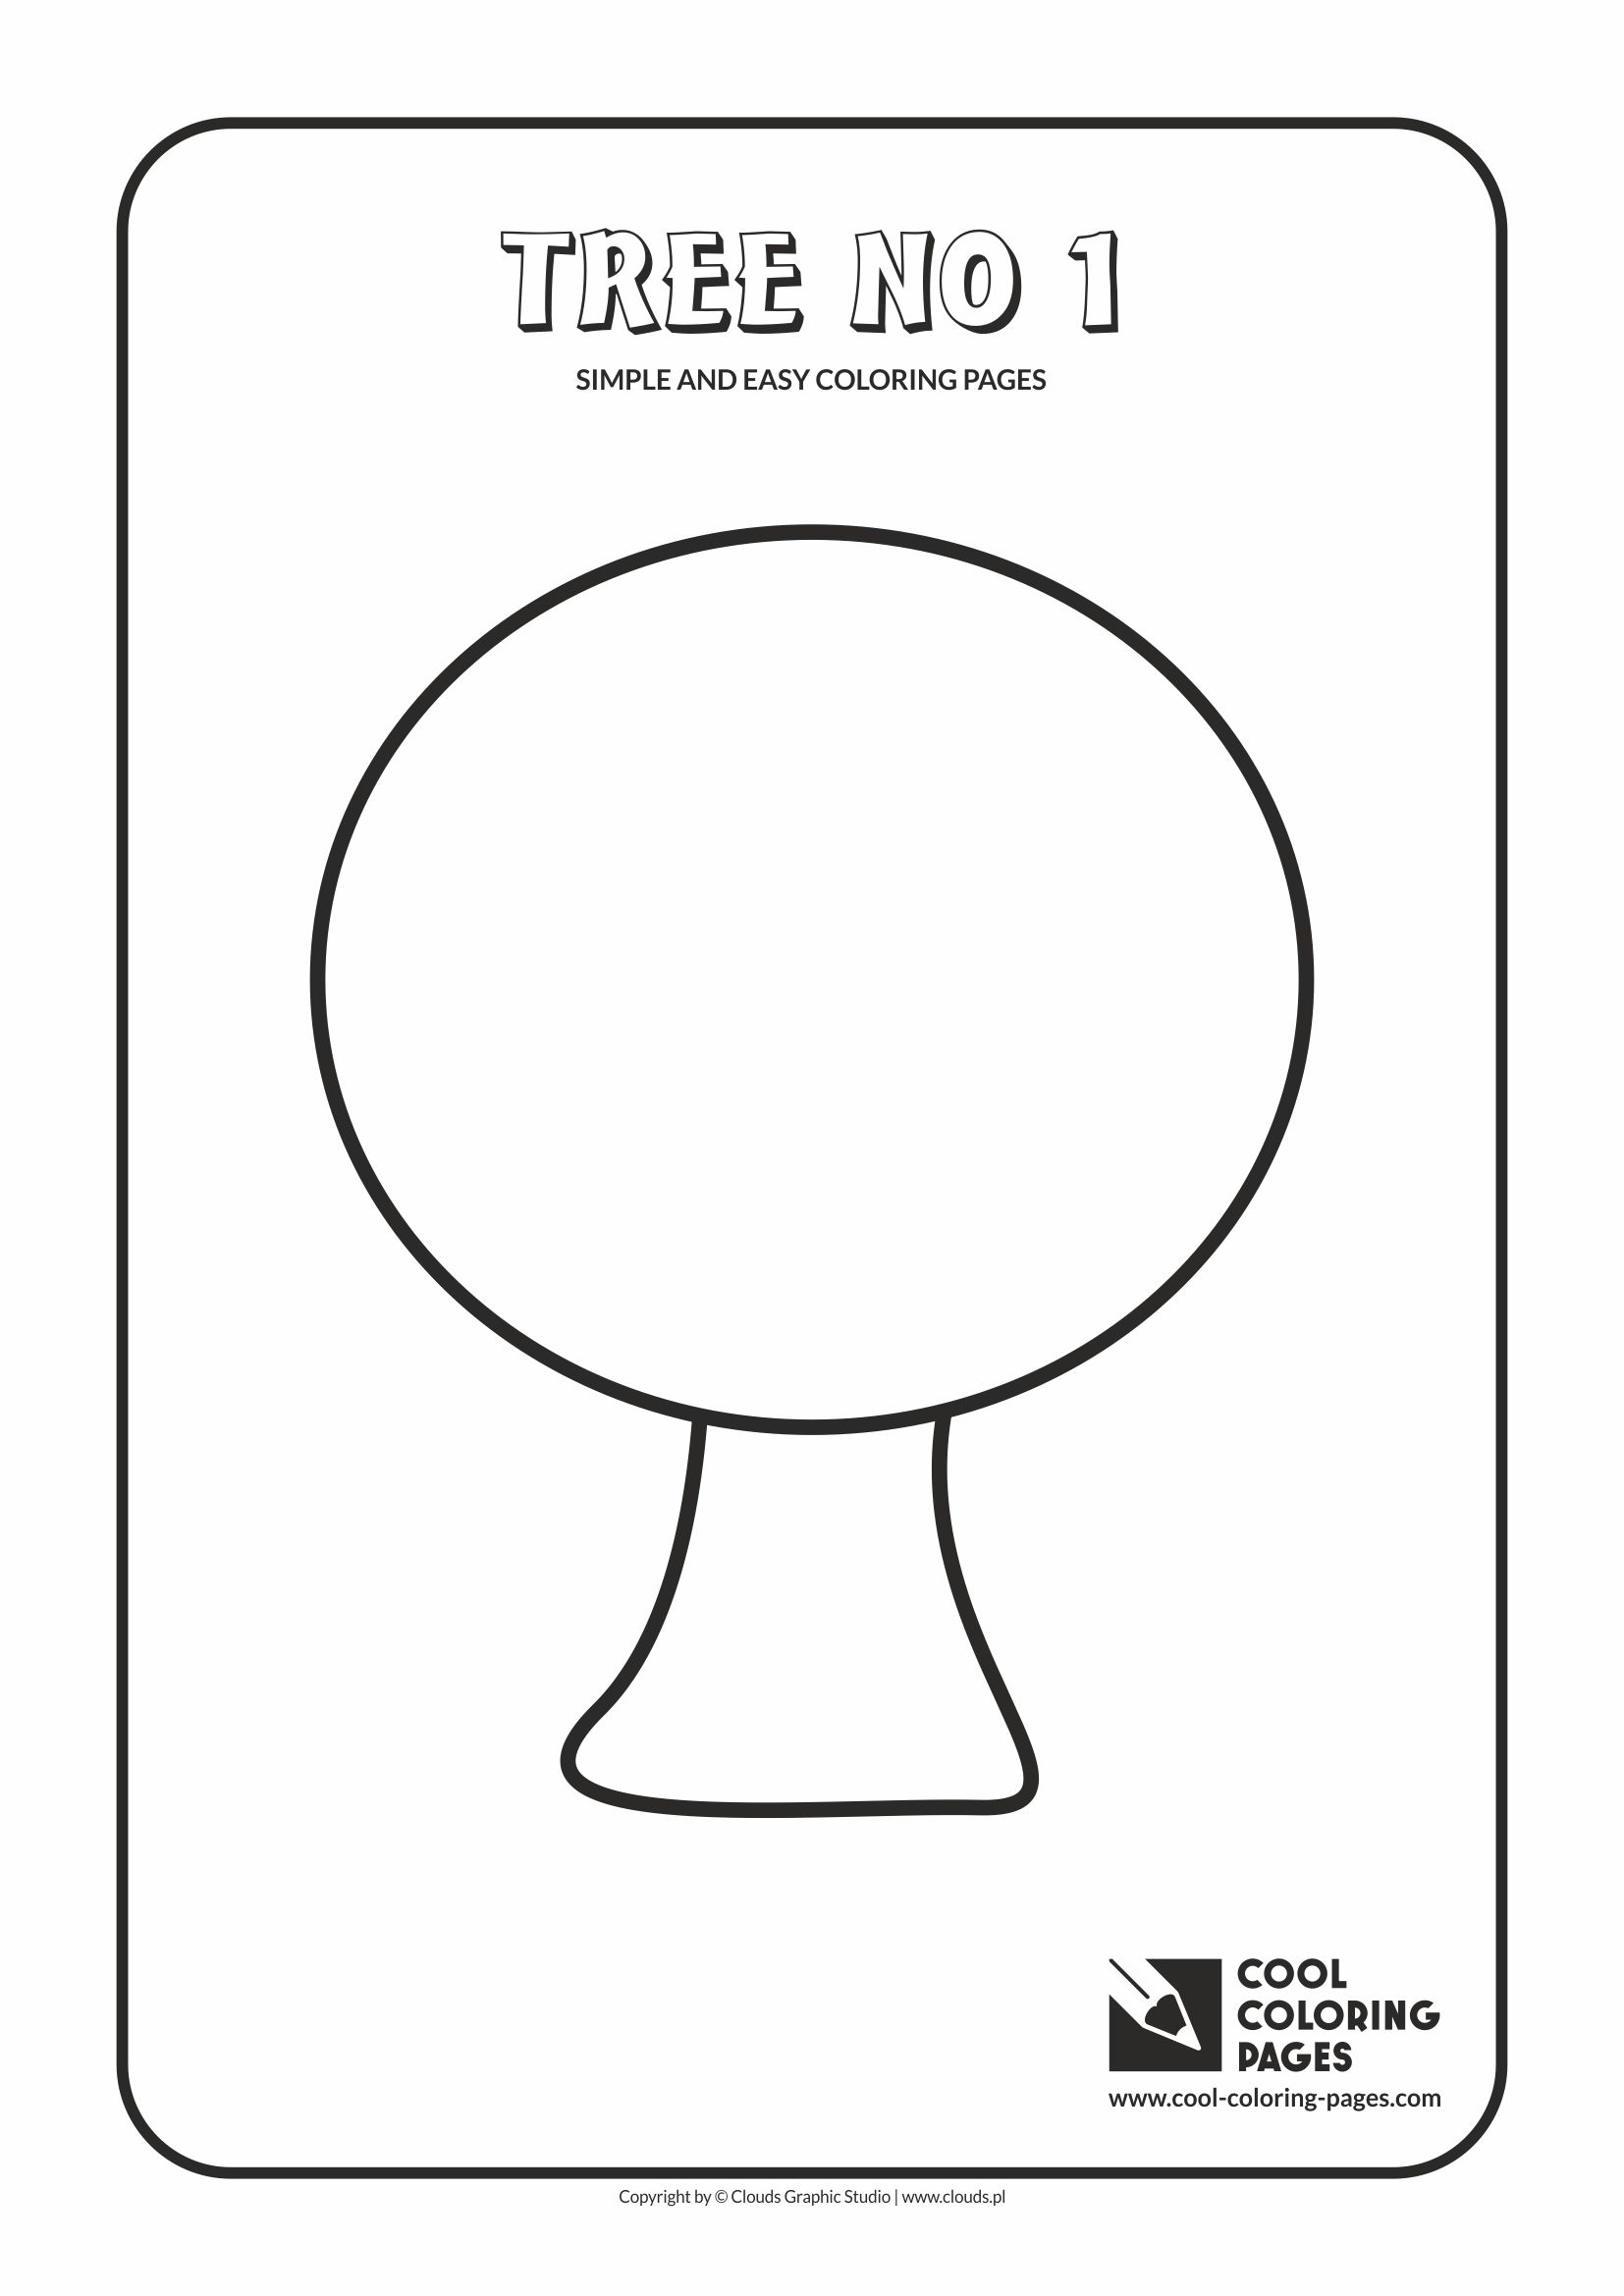 Simple and easy coloring pages for toddlers - Tree no 1